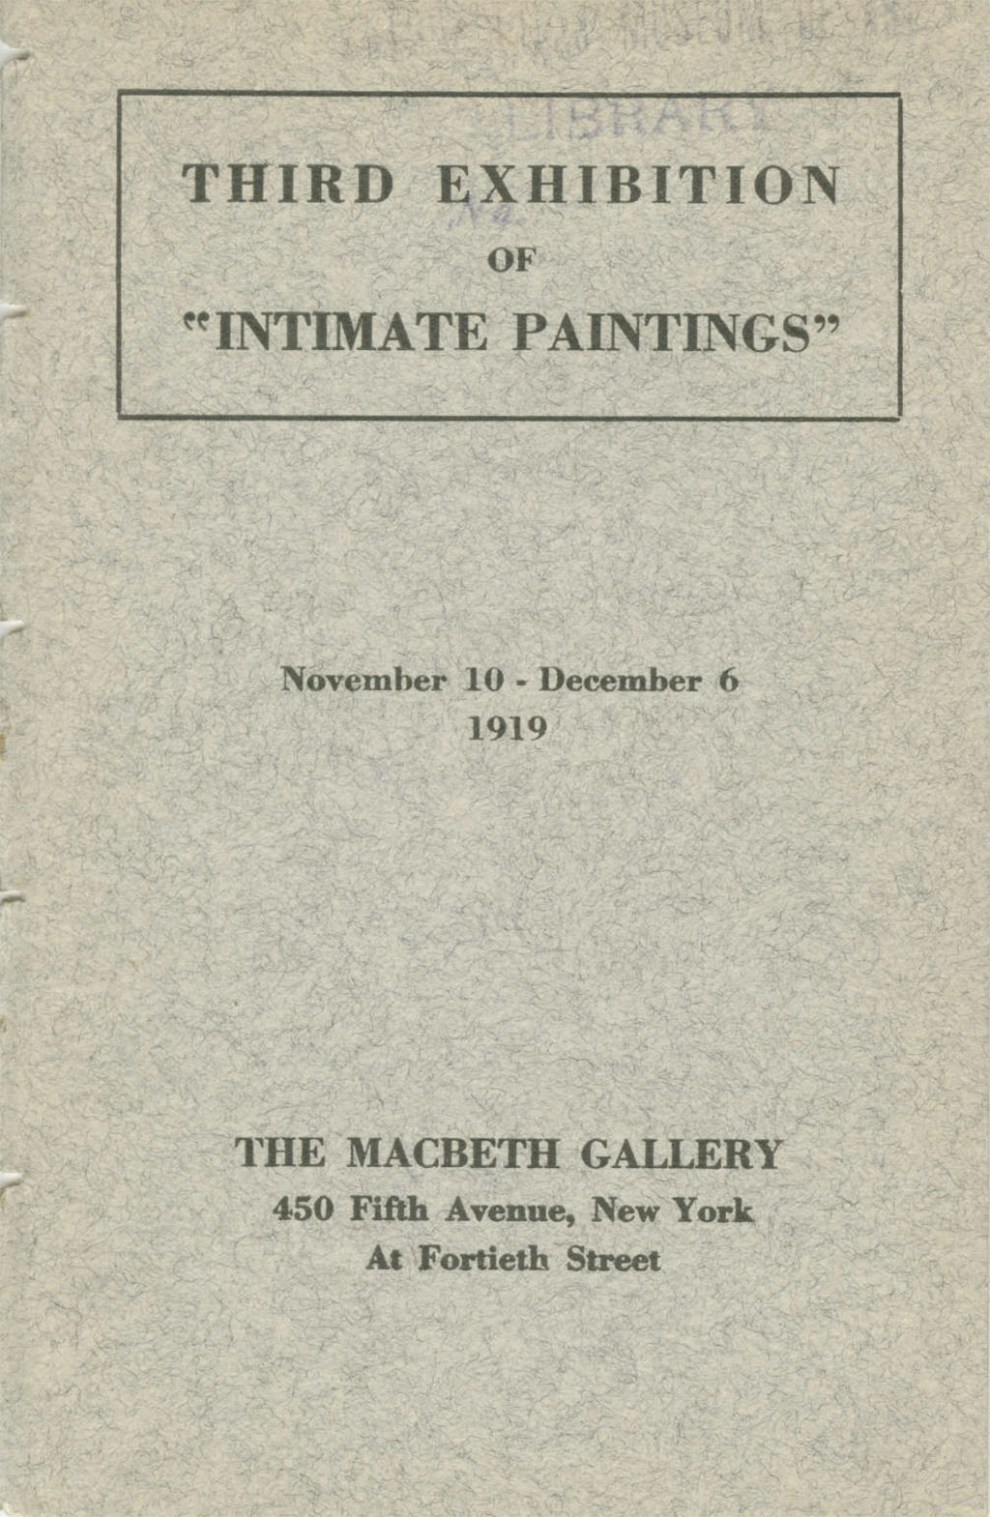 """1919 The Macbeth Gallery, 450 Fifth Avenue, New York, NY, """"Third Exhibition of Intimate Paintings"""", November 10 – December 6"""